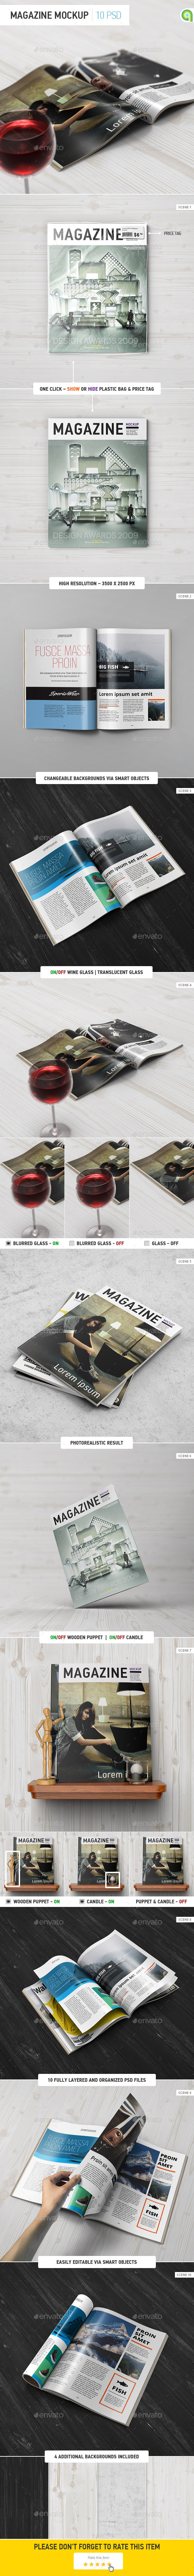 GraphicRiver Magazine Mockup 9868213